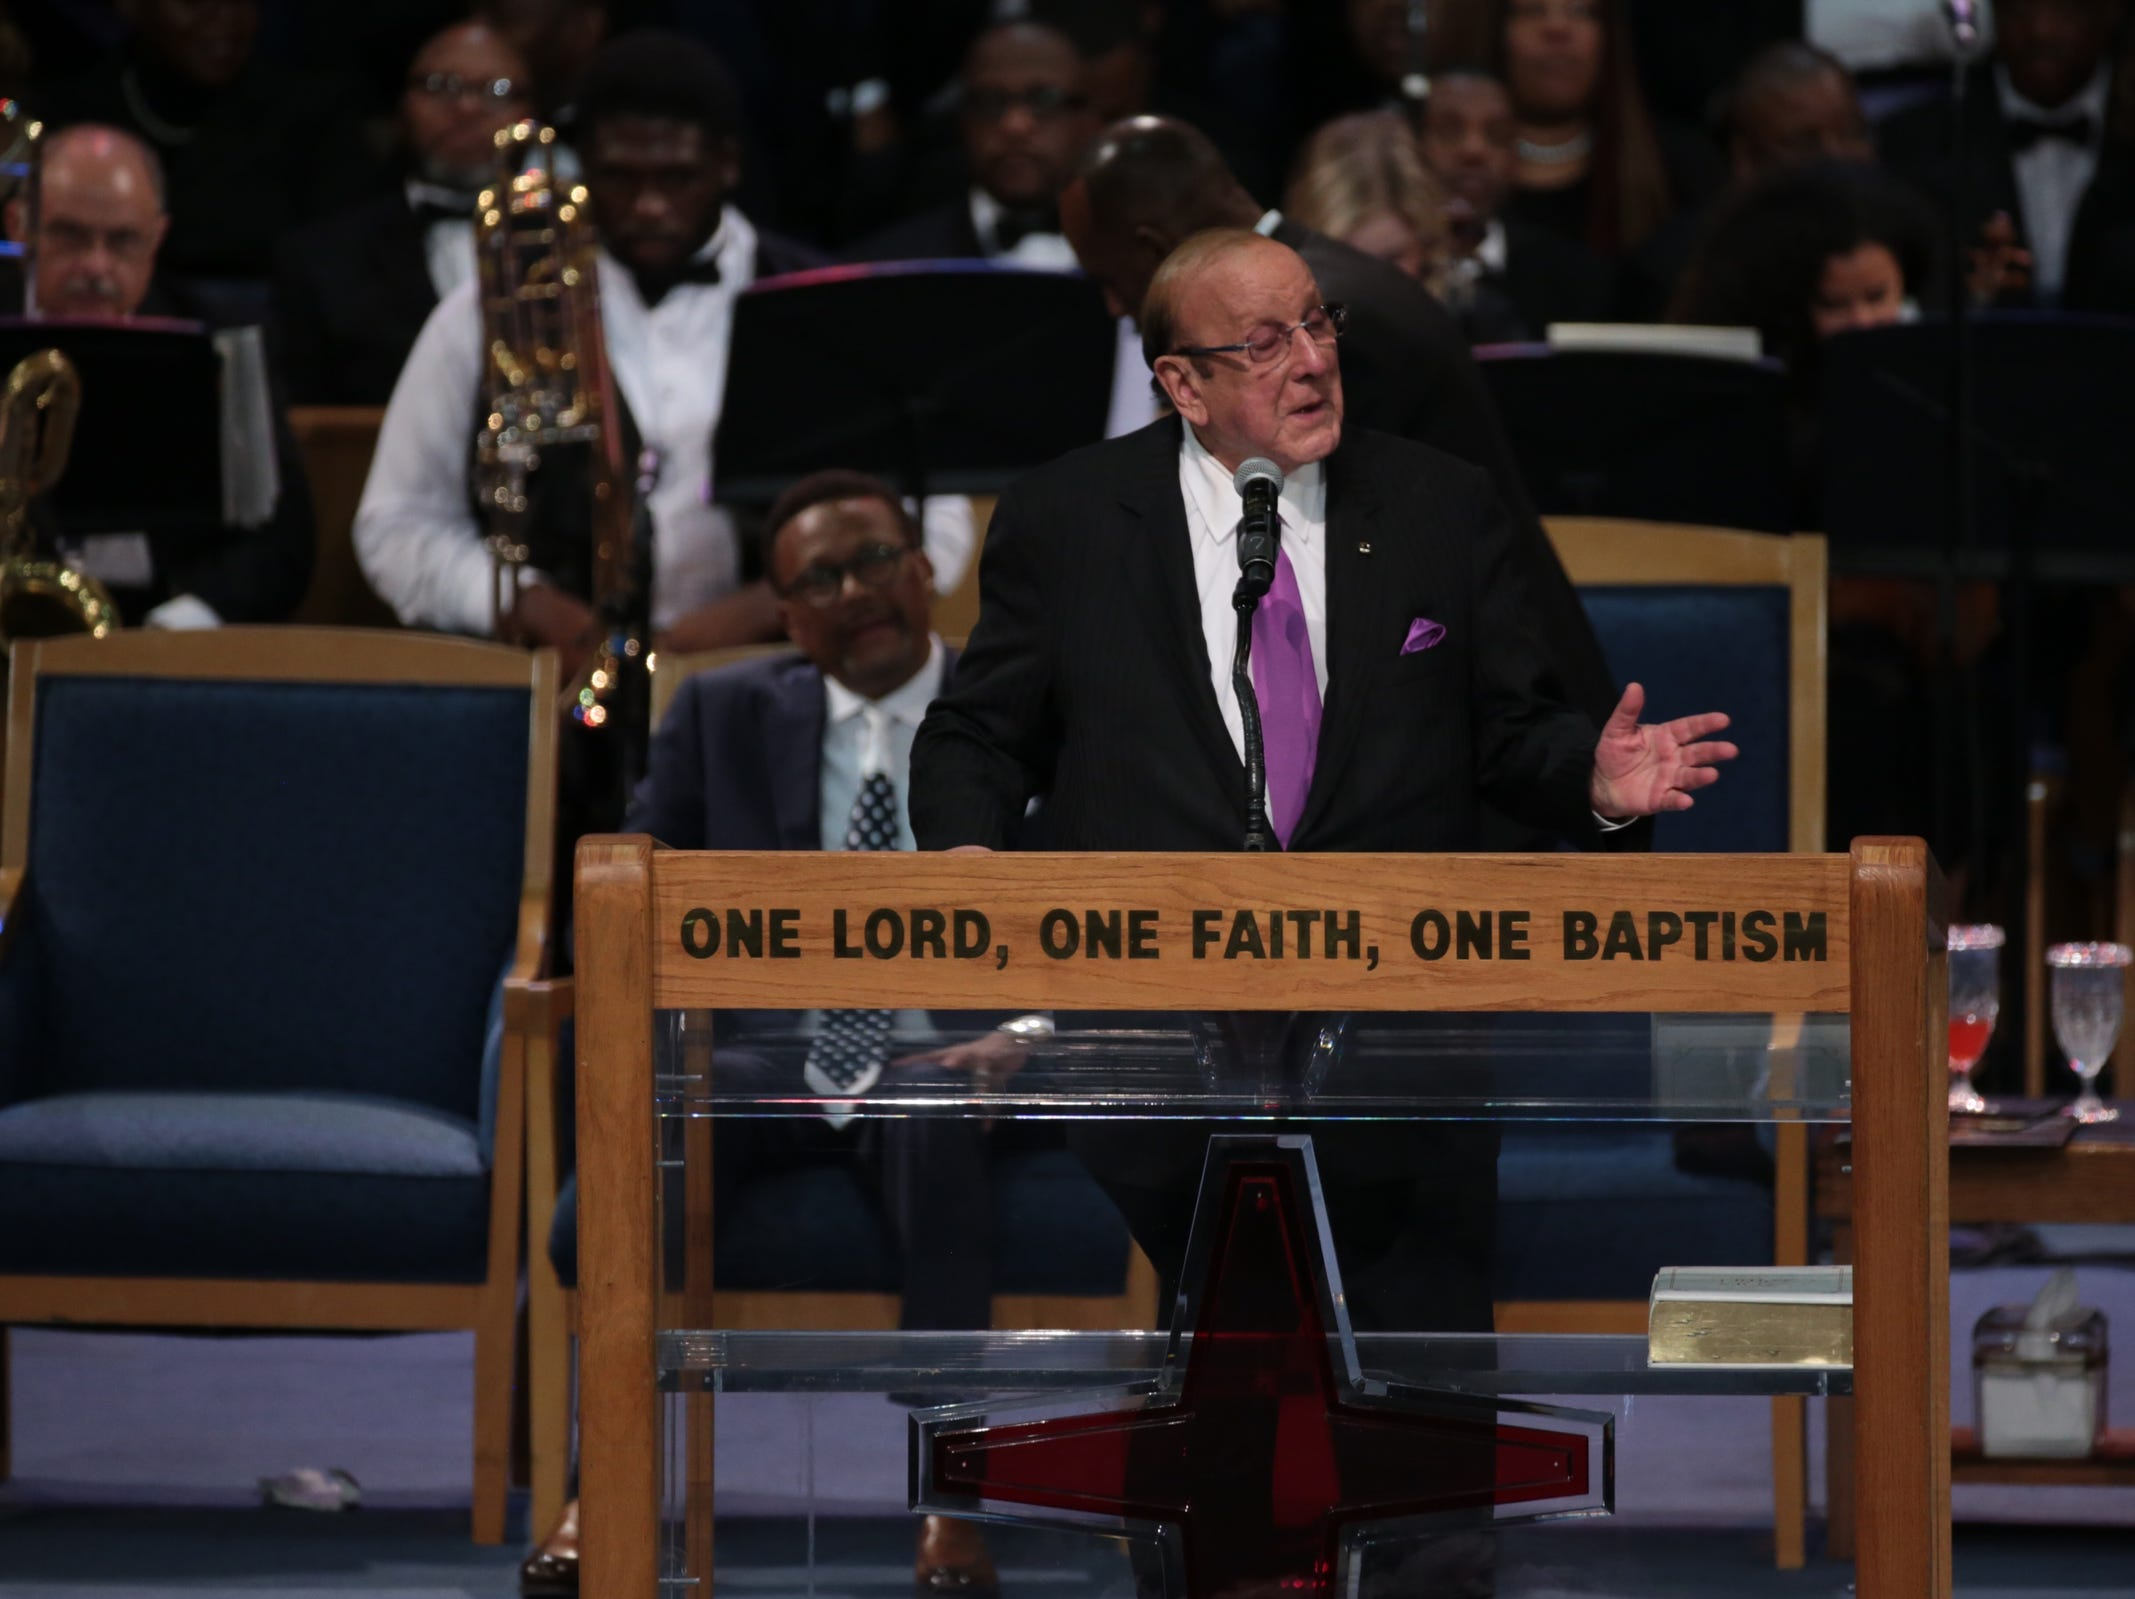 Clive Davis speaks during the funeral for the late Aretha Franklin at Greater Grace Temple in Detroit on Friday, August 31, 2018.